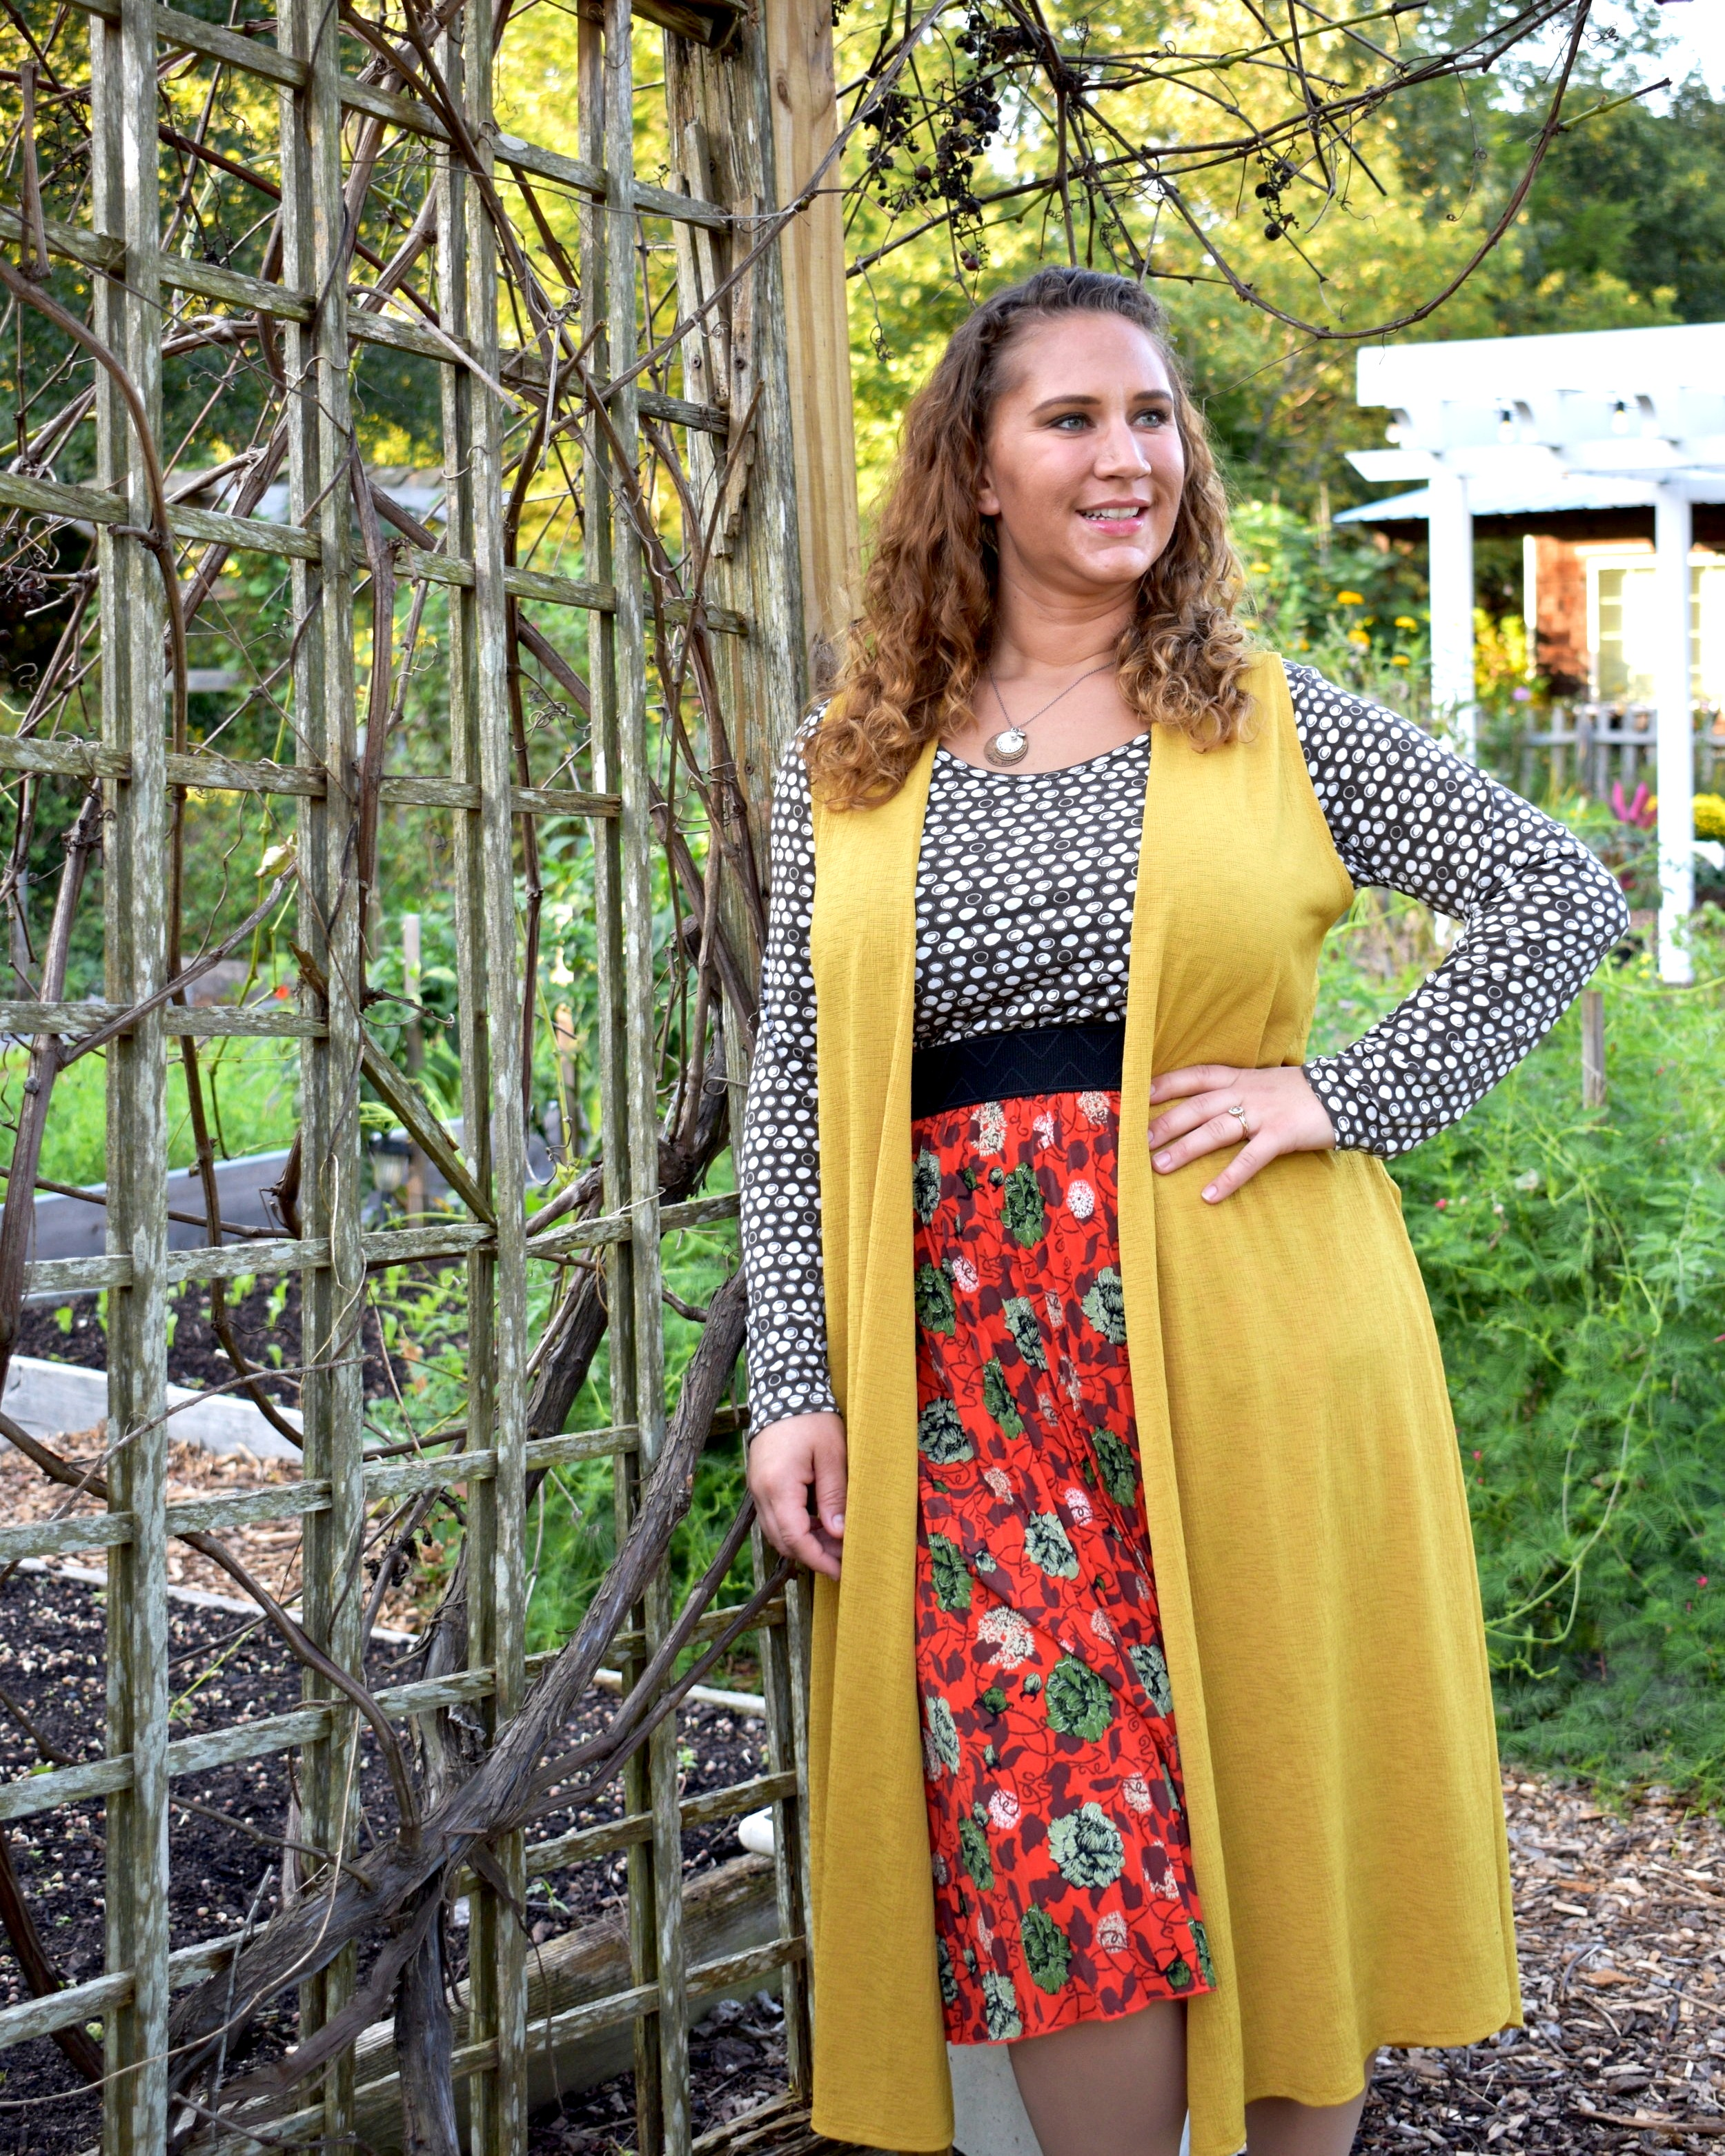 Nice balance of pattern here using a textured polka dot and chiffon floral skirt with the micro pleats. The textured mustard vest compliments the green and orange tones in the skirt.